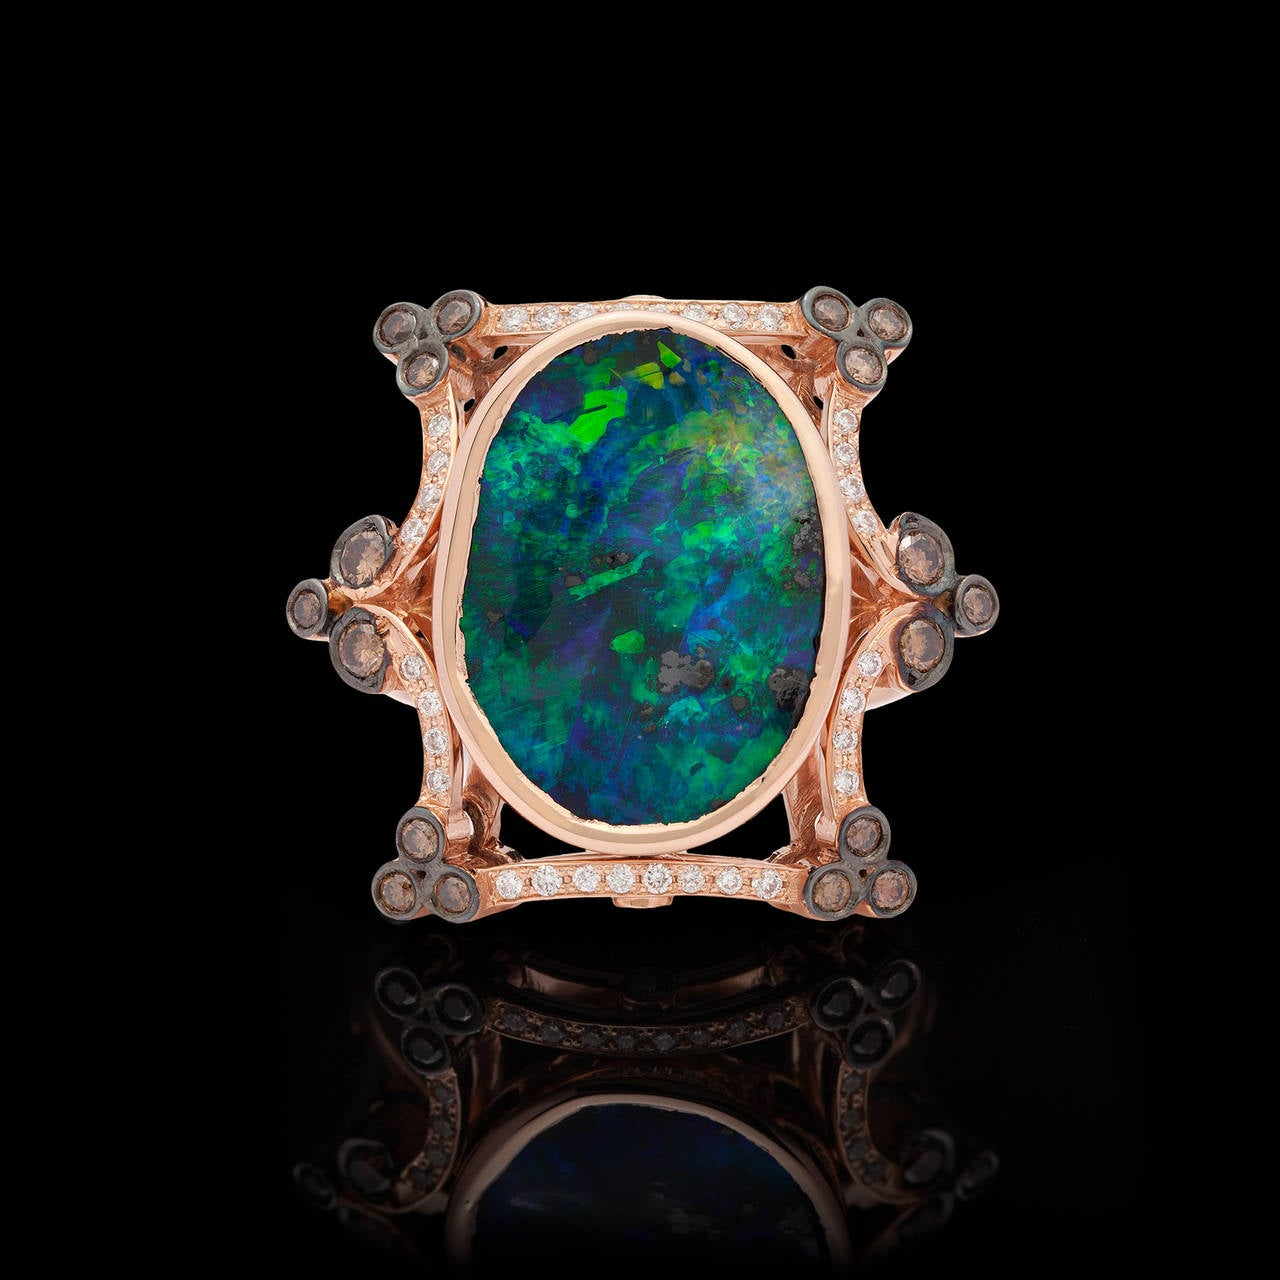 18Kt Rose Gold ring features a 7.23-ct Oval shape Boulder Black Opal with blue & green Play of Color. Accenting the ring are 32 white diamonds totaling 0.20-ctw, and 18 cognac color diamonds totaling 0.30-ctw. The top of the ring measures about 1